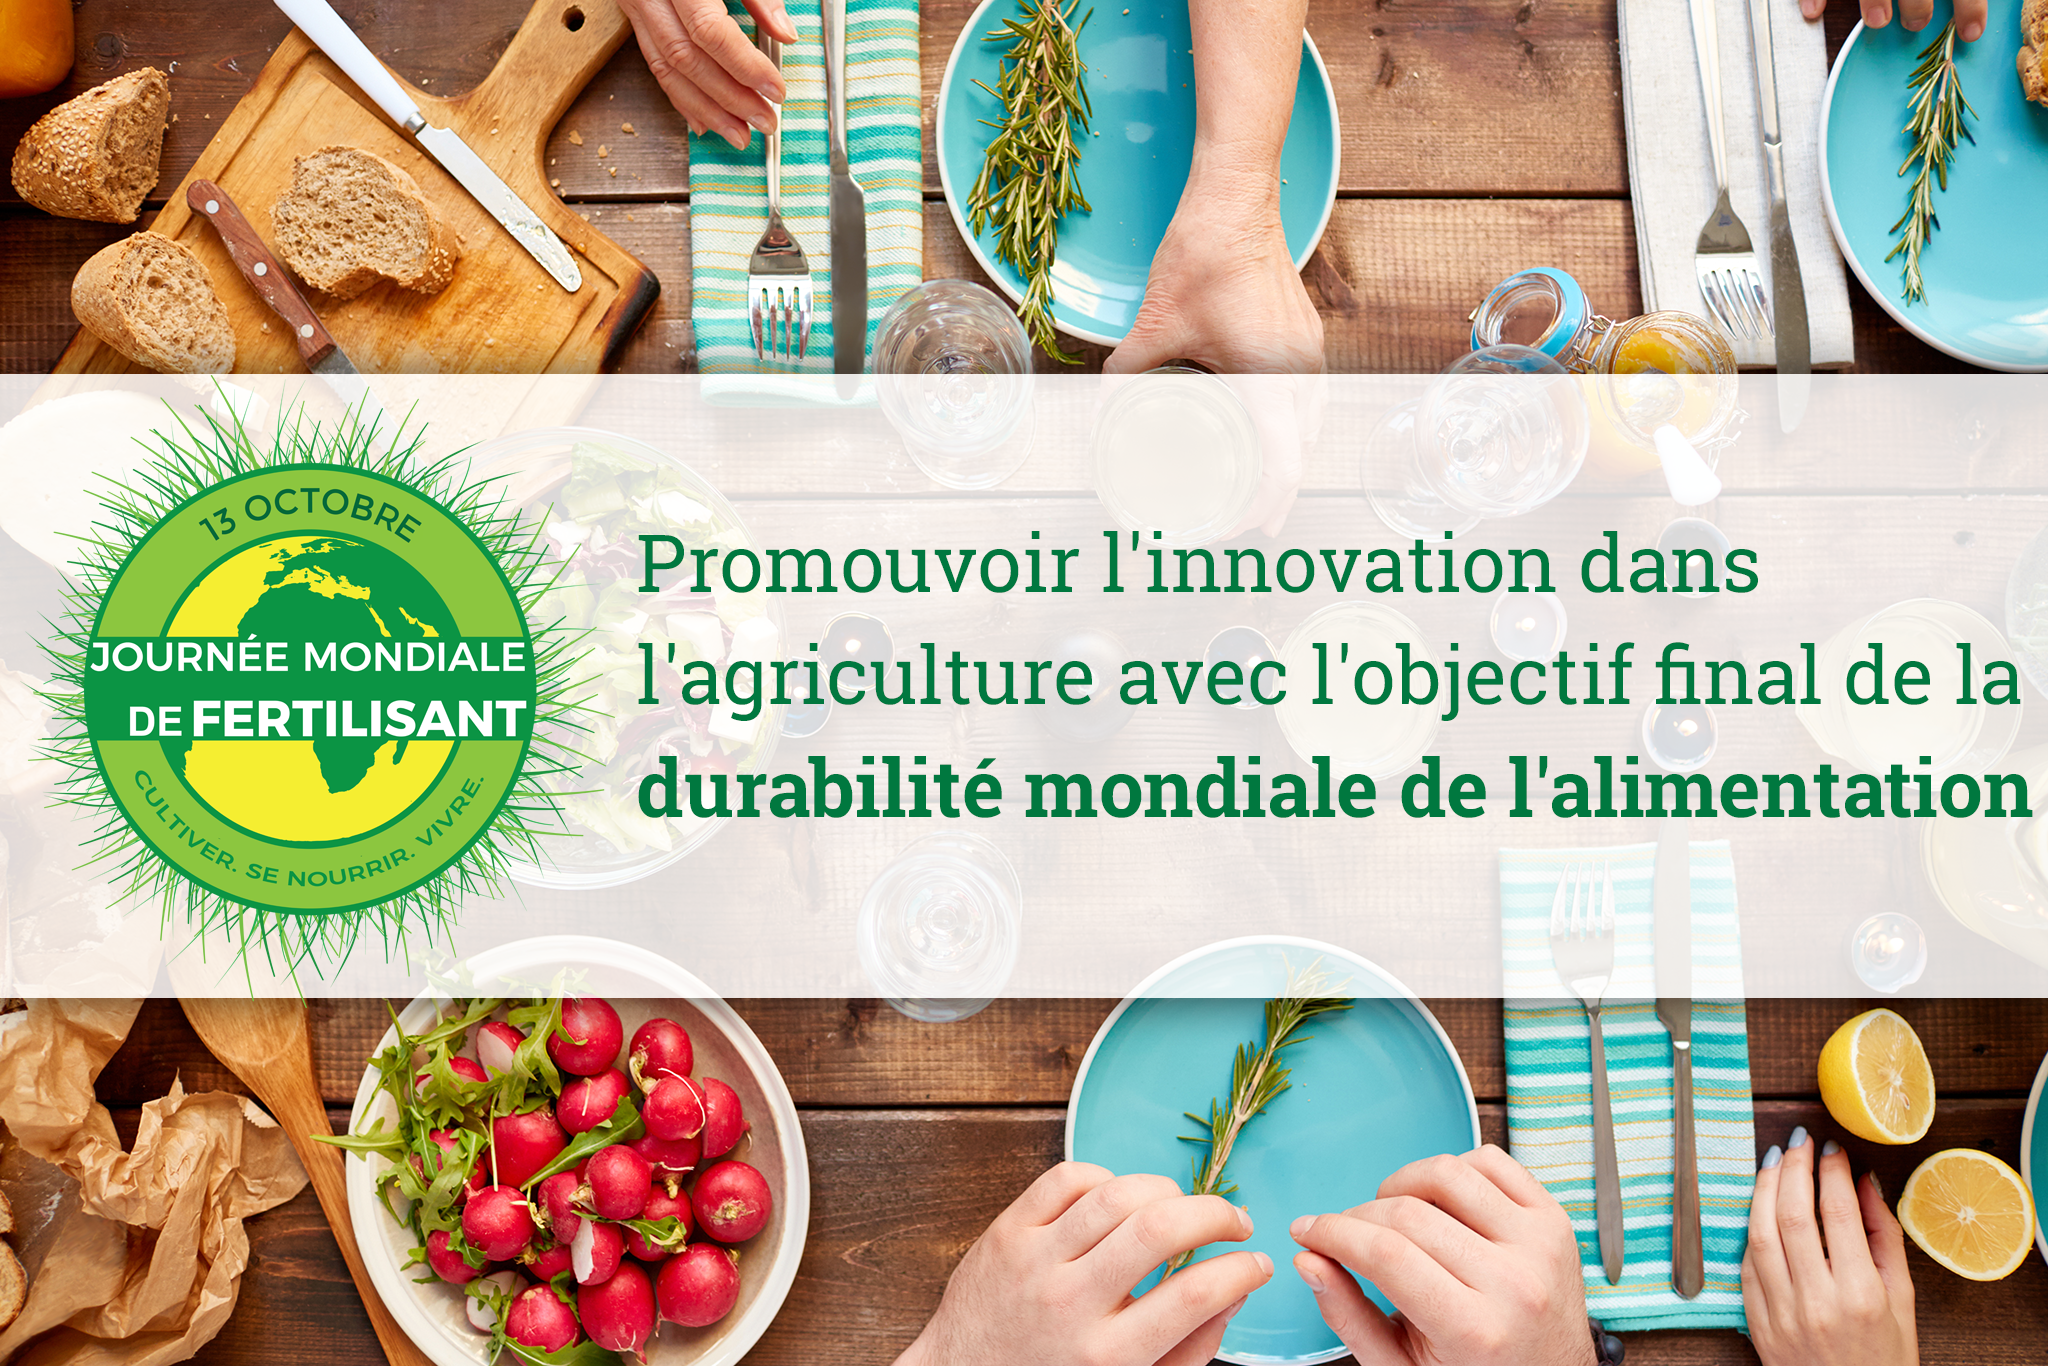 Promoting innovation in agriculture with the end-goal of worldwide food sustainability